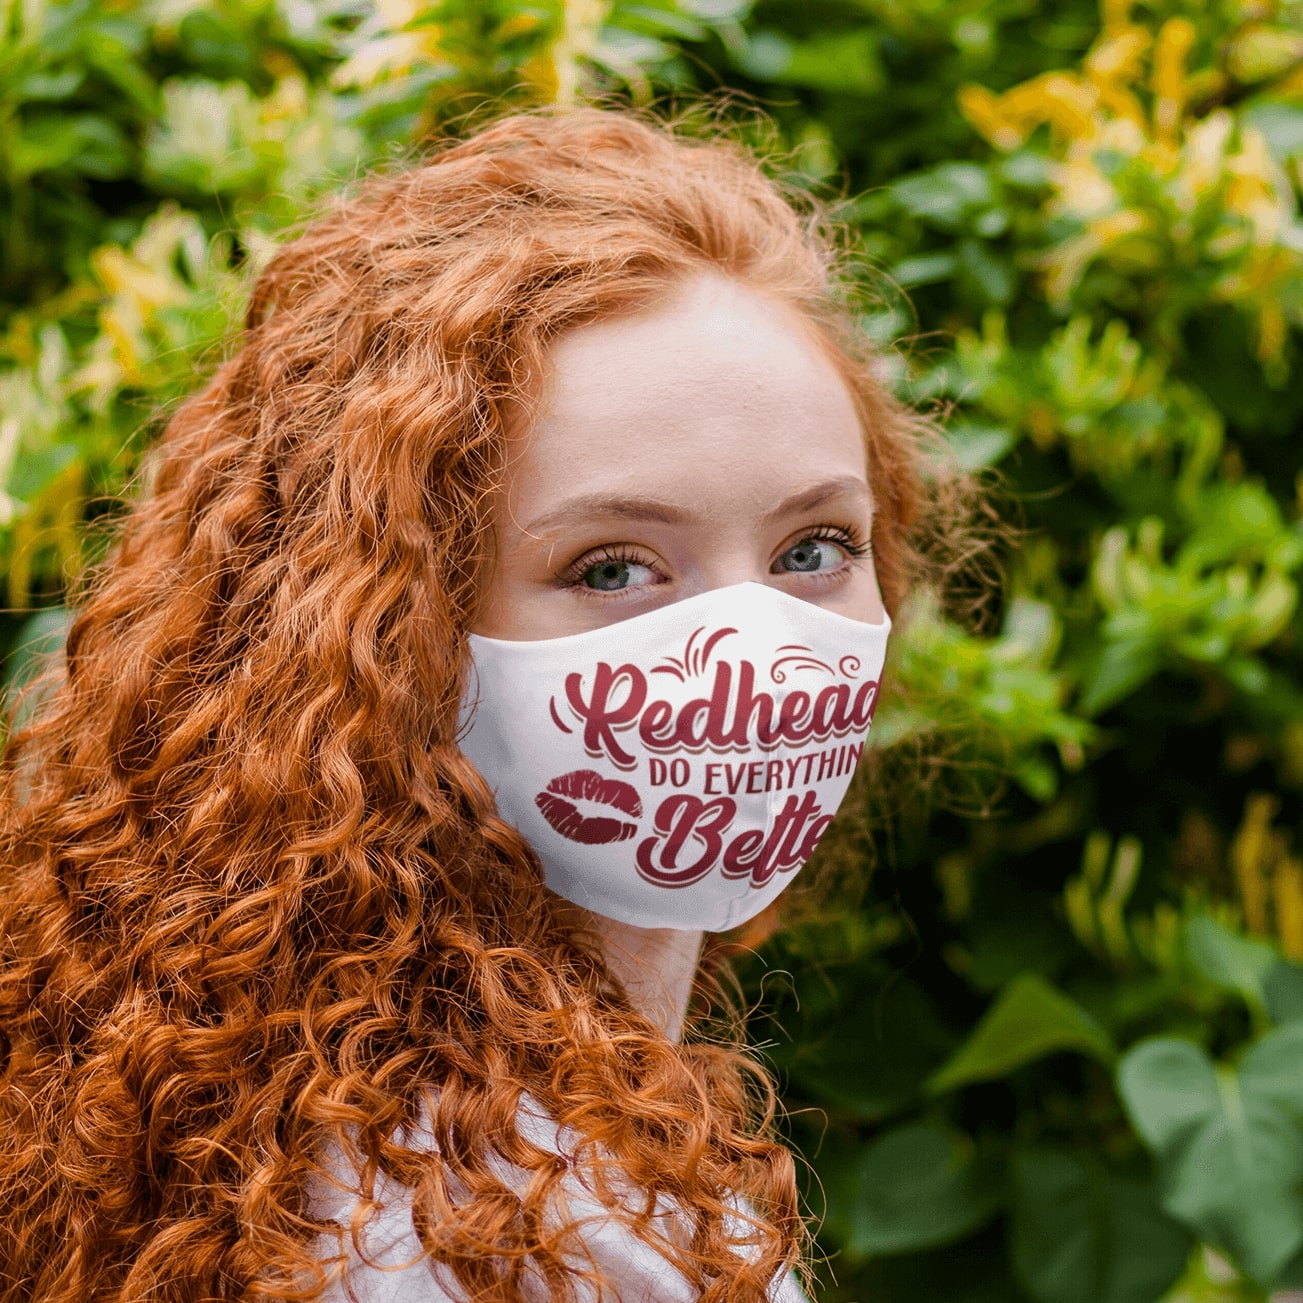 Redheads do everything better sexy lips all over printed face mask 2